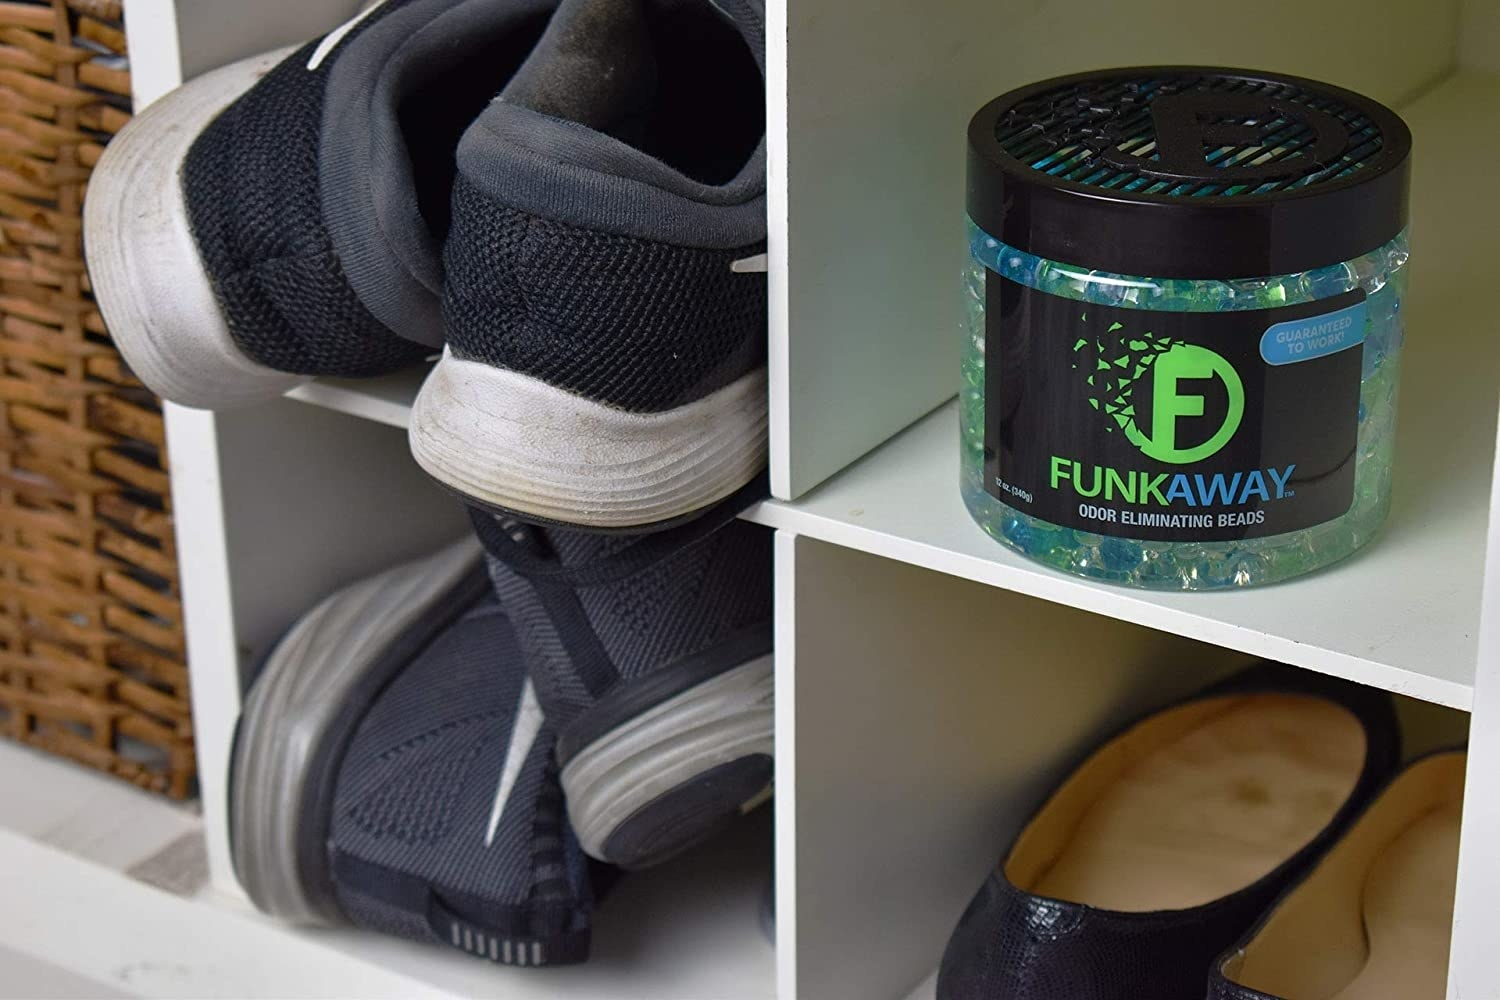 The odour-absorbing beads in a shoe closet